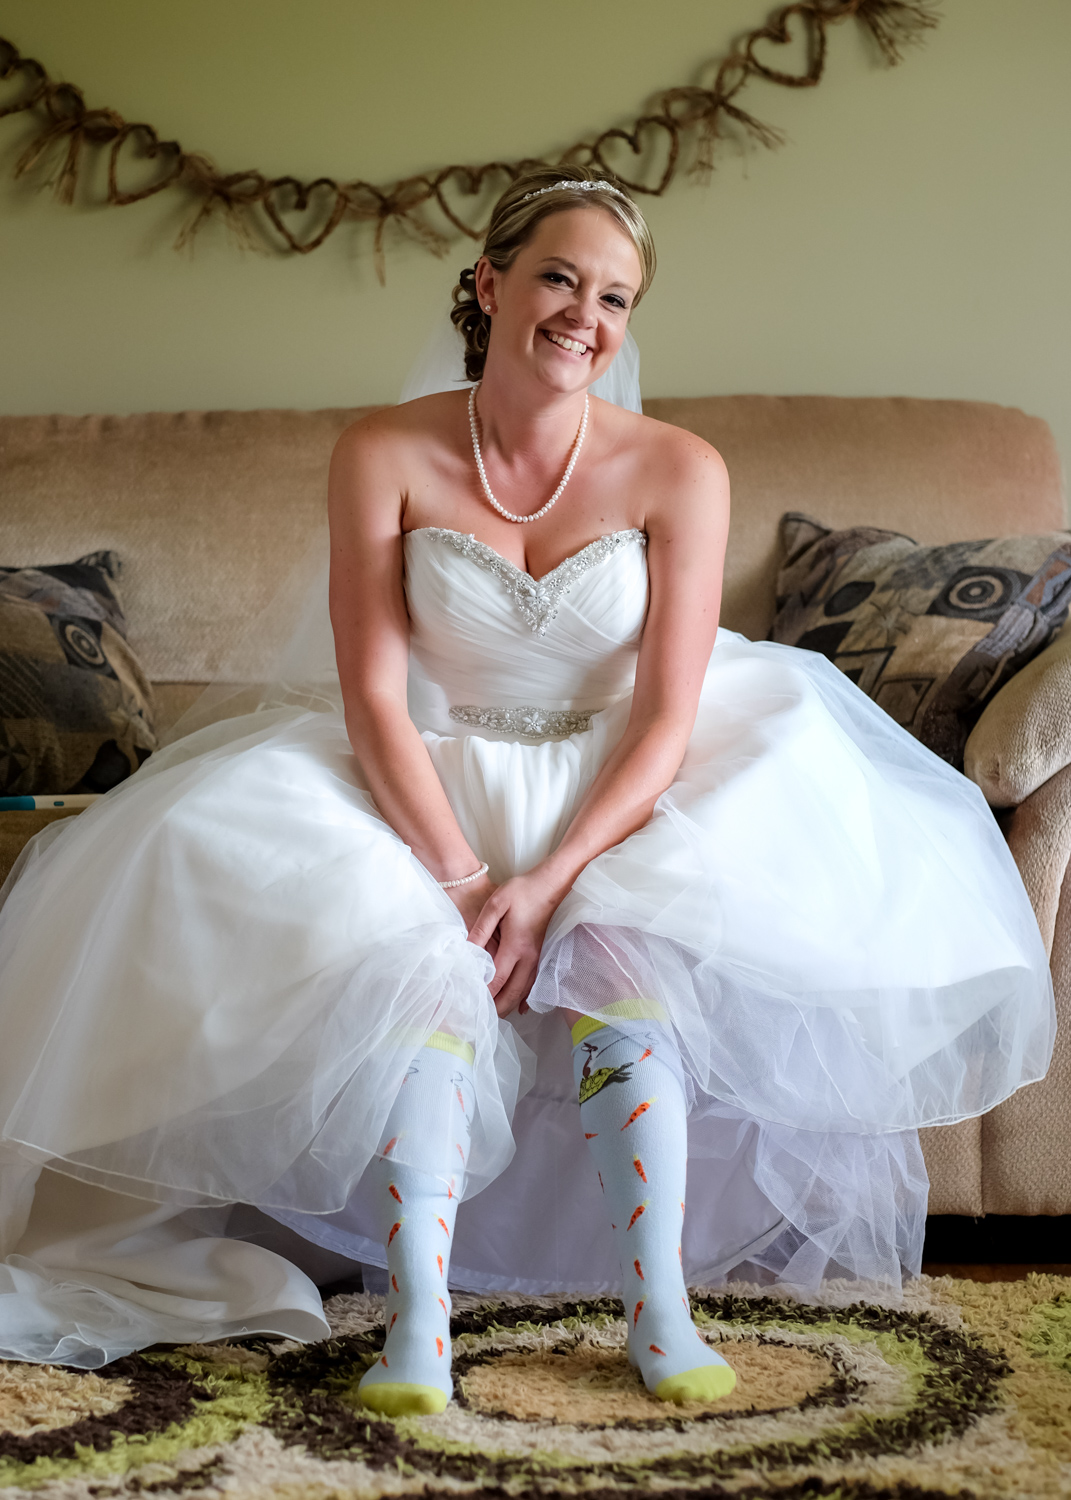 bride in funky socks - Wedding Photography Tip - 3 Ways to Tame a Bridezilla